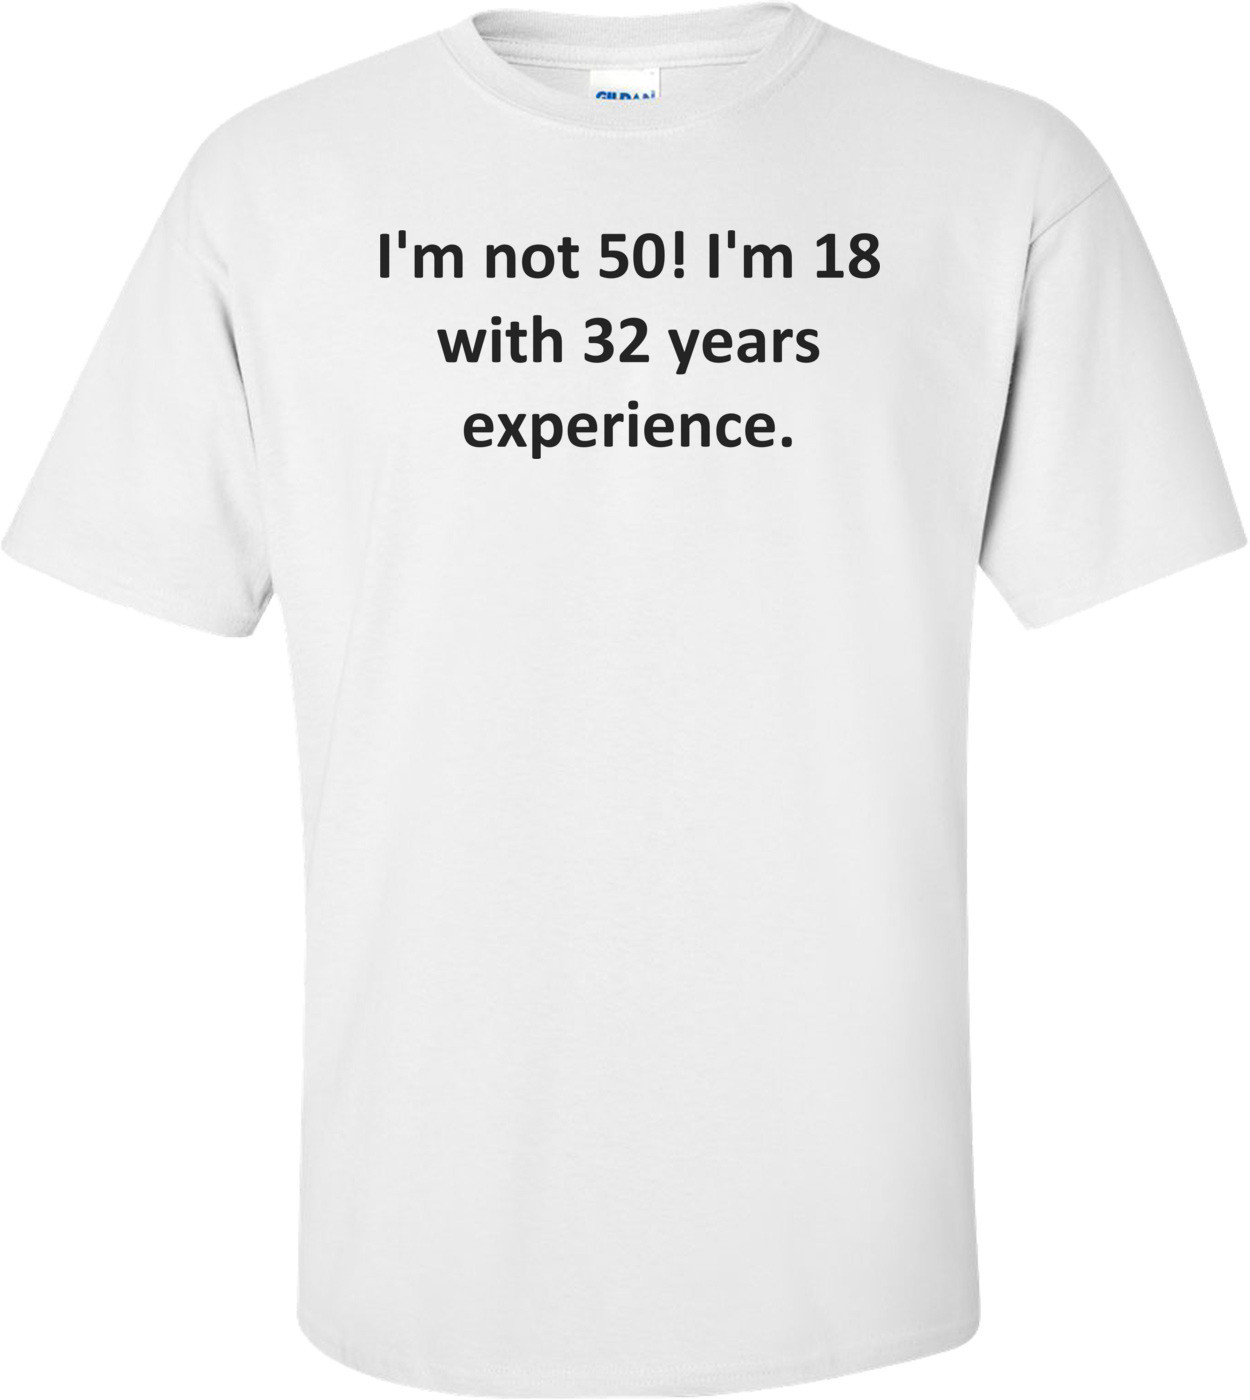 I'm not 50! I'm 18 with 32 years experience. Shirt